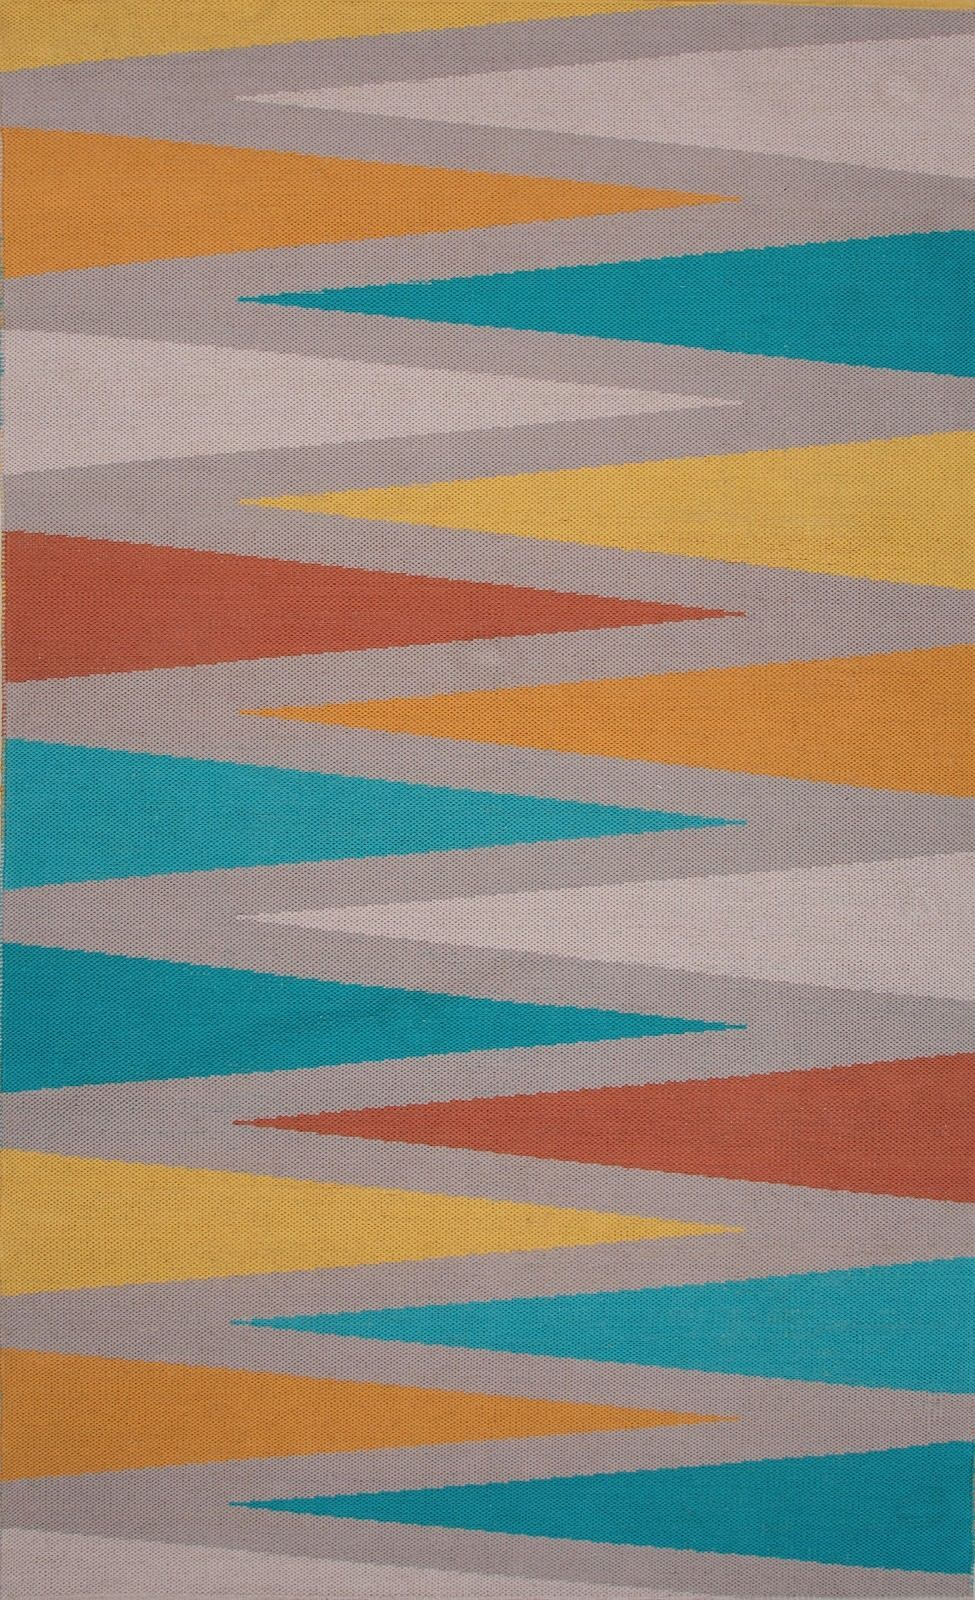 jaipur traditions made modern cotton flat weave solid/striped area rug collection